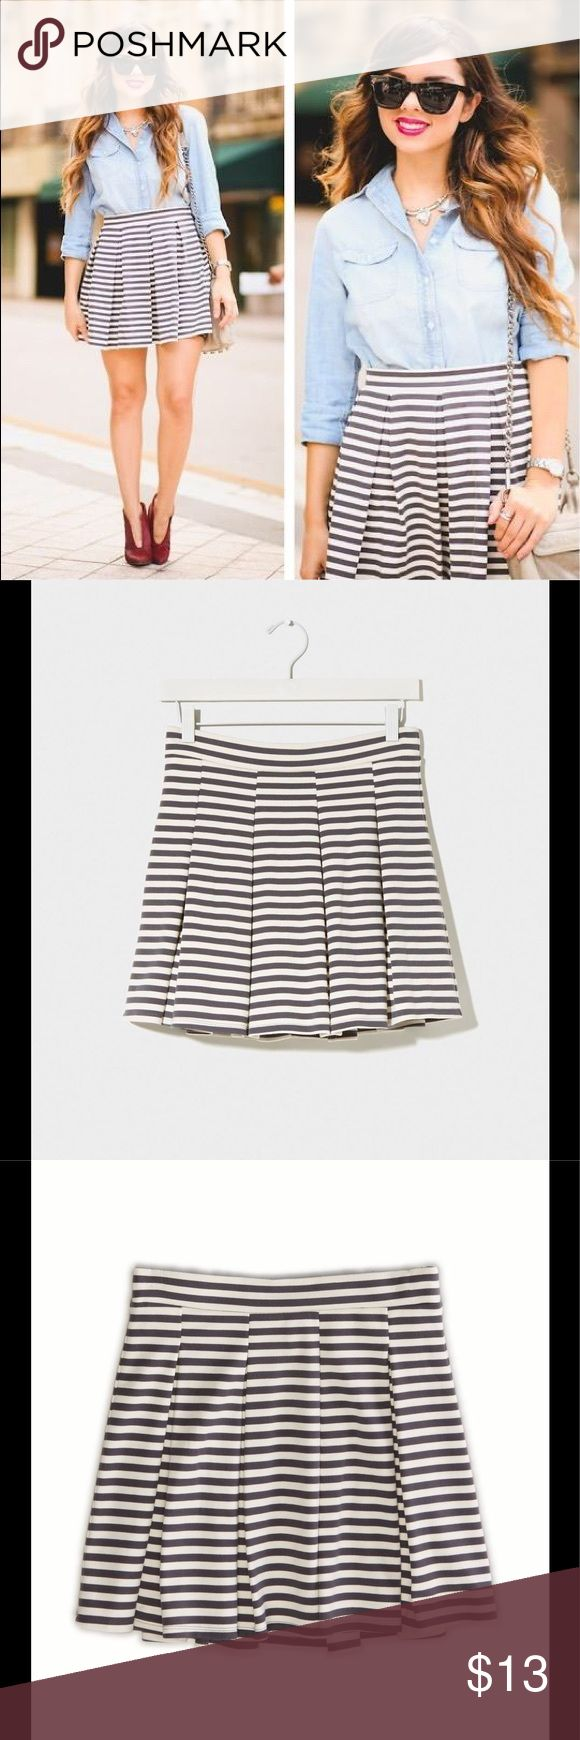 AE   Pleated Stripe Circle Skirt This cute little skirt is very versatile. Great for Summer, or just add tights in the Winter. Pleated Stripe Circle Skirt  by American Eagle Outfitters. Heavy weight knit, full skirt with charcoal gray stripes. Waist 16 in. measured flat, length 16 in. American Eagle Outfitters Skirts A-Line or Full